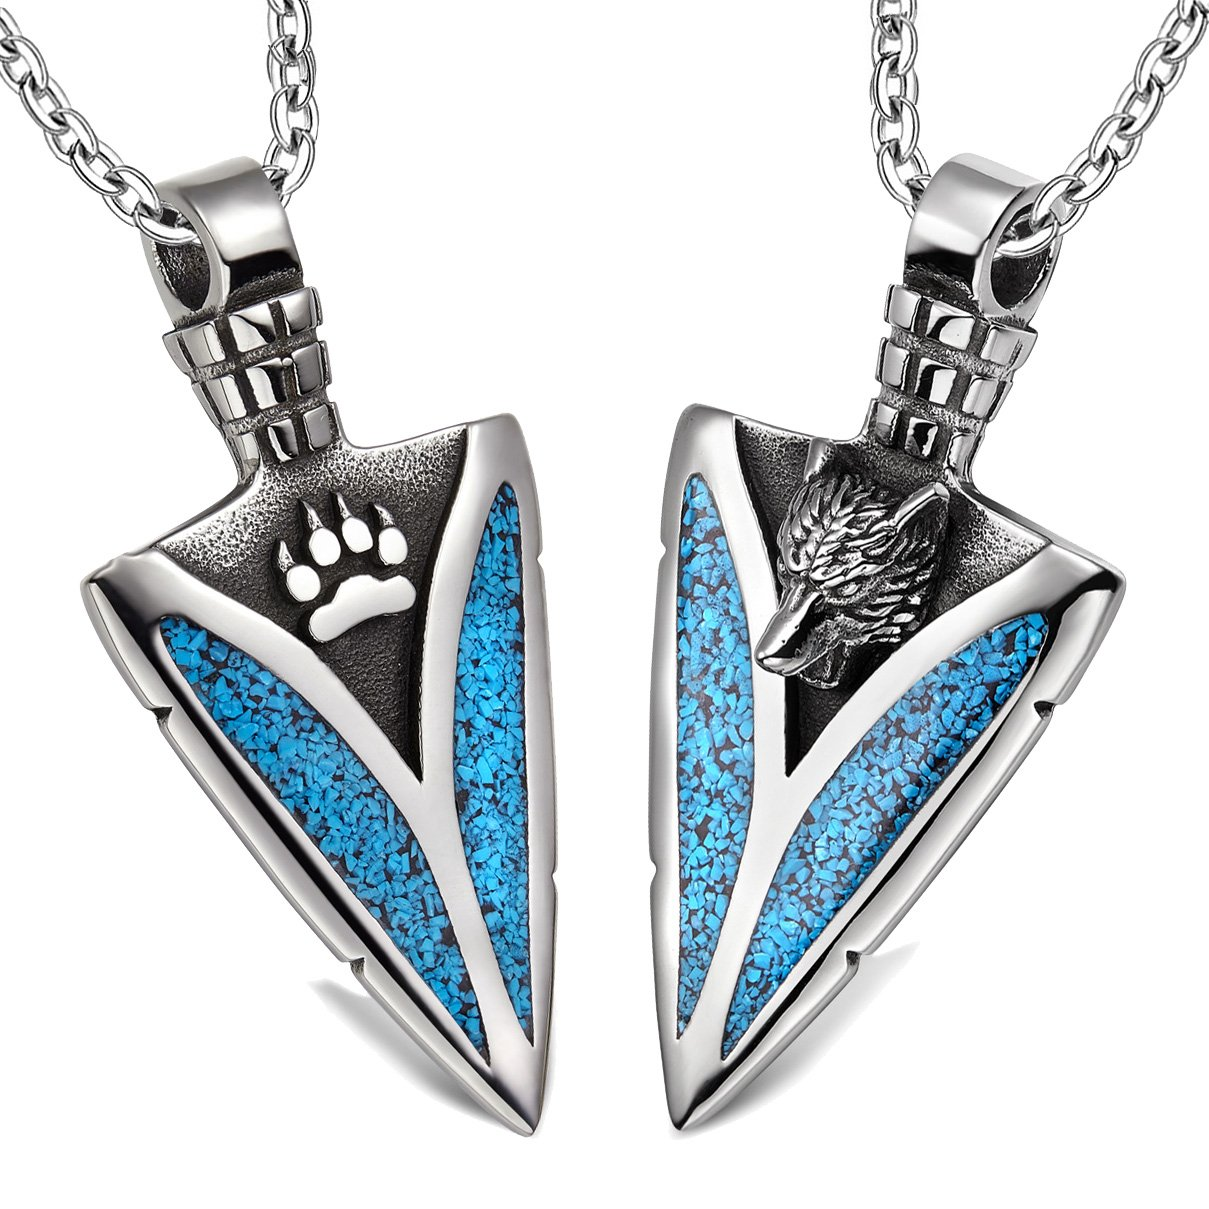 Arrowhead Howling Wolf and Wild Paw Love Couples or Best Friends Amulet Set Simulated Turquoise Necklaces